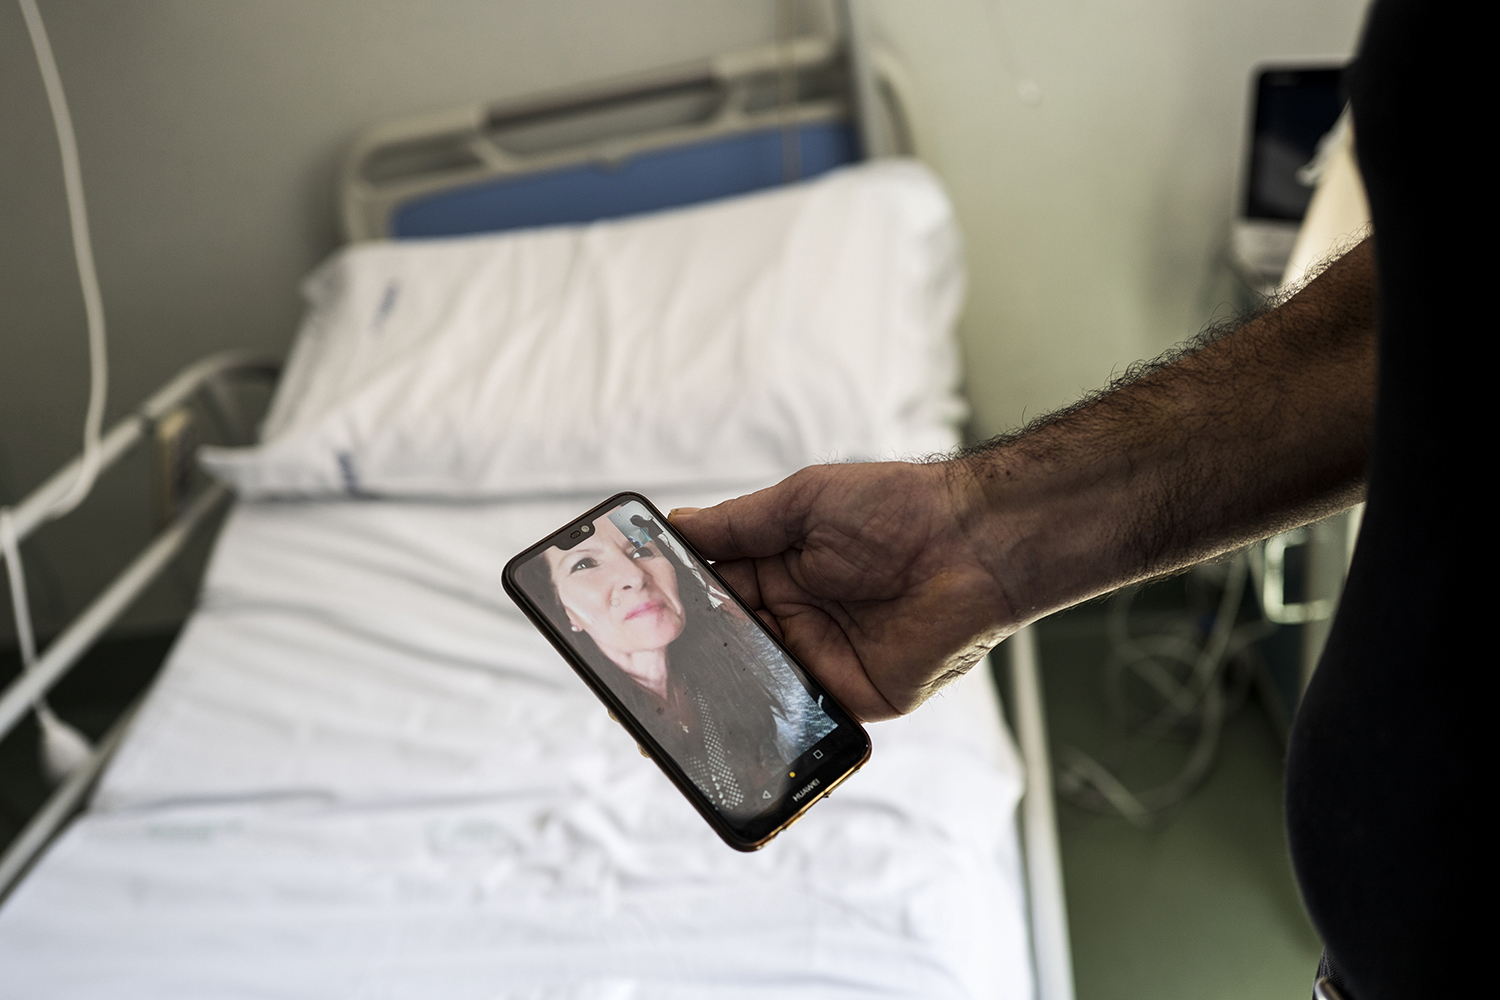 D'Agostino talks to his wife in Penne from Santo Spirito Hospital on April 27, informing her that he is finally returning home.